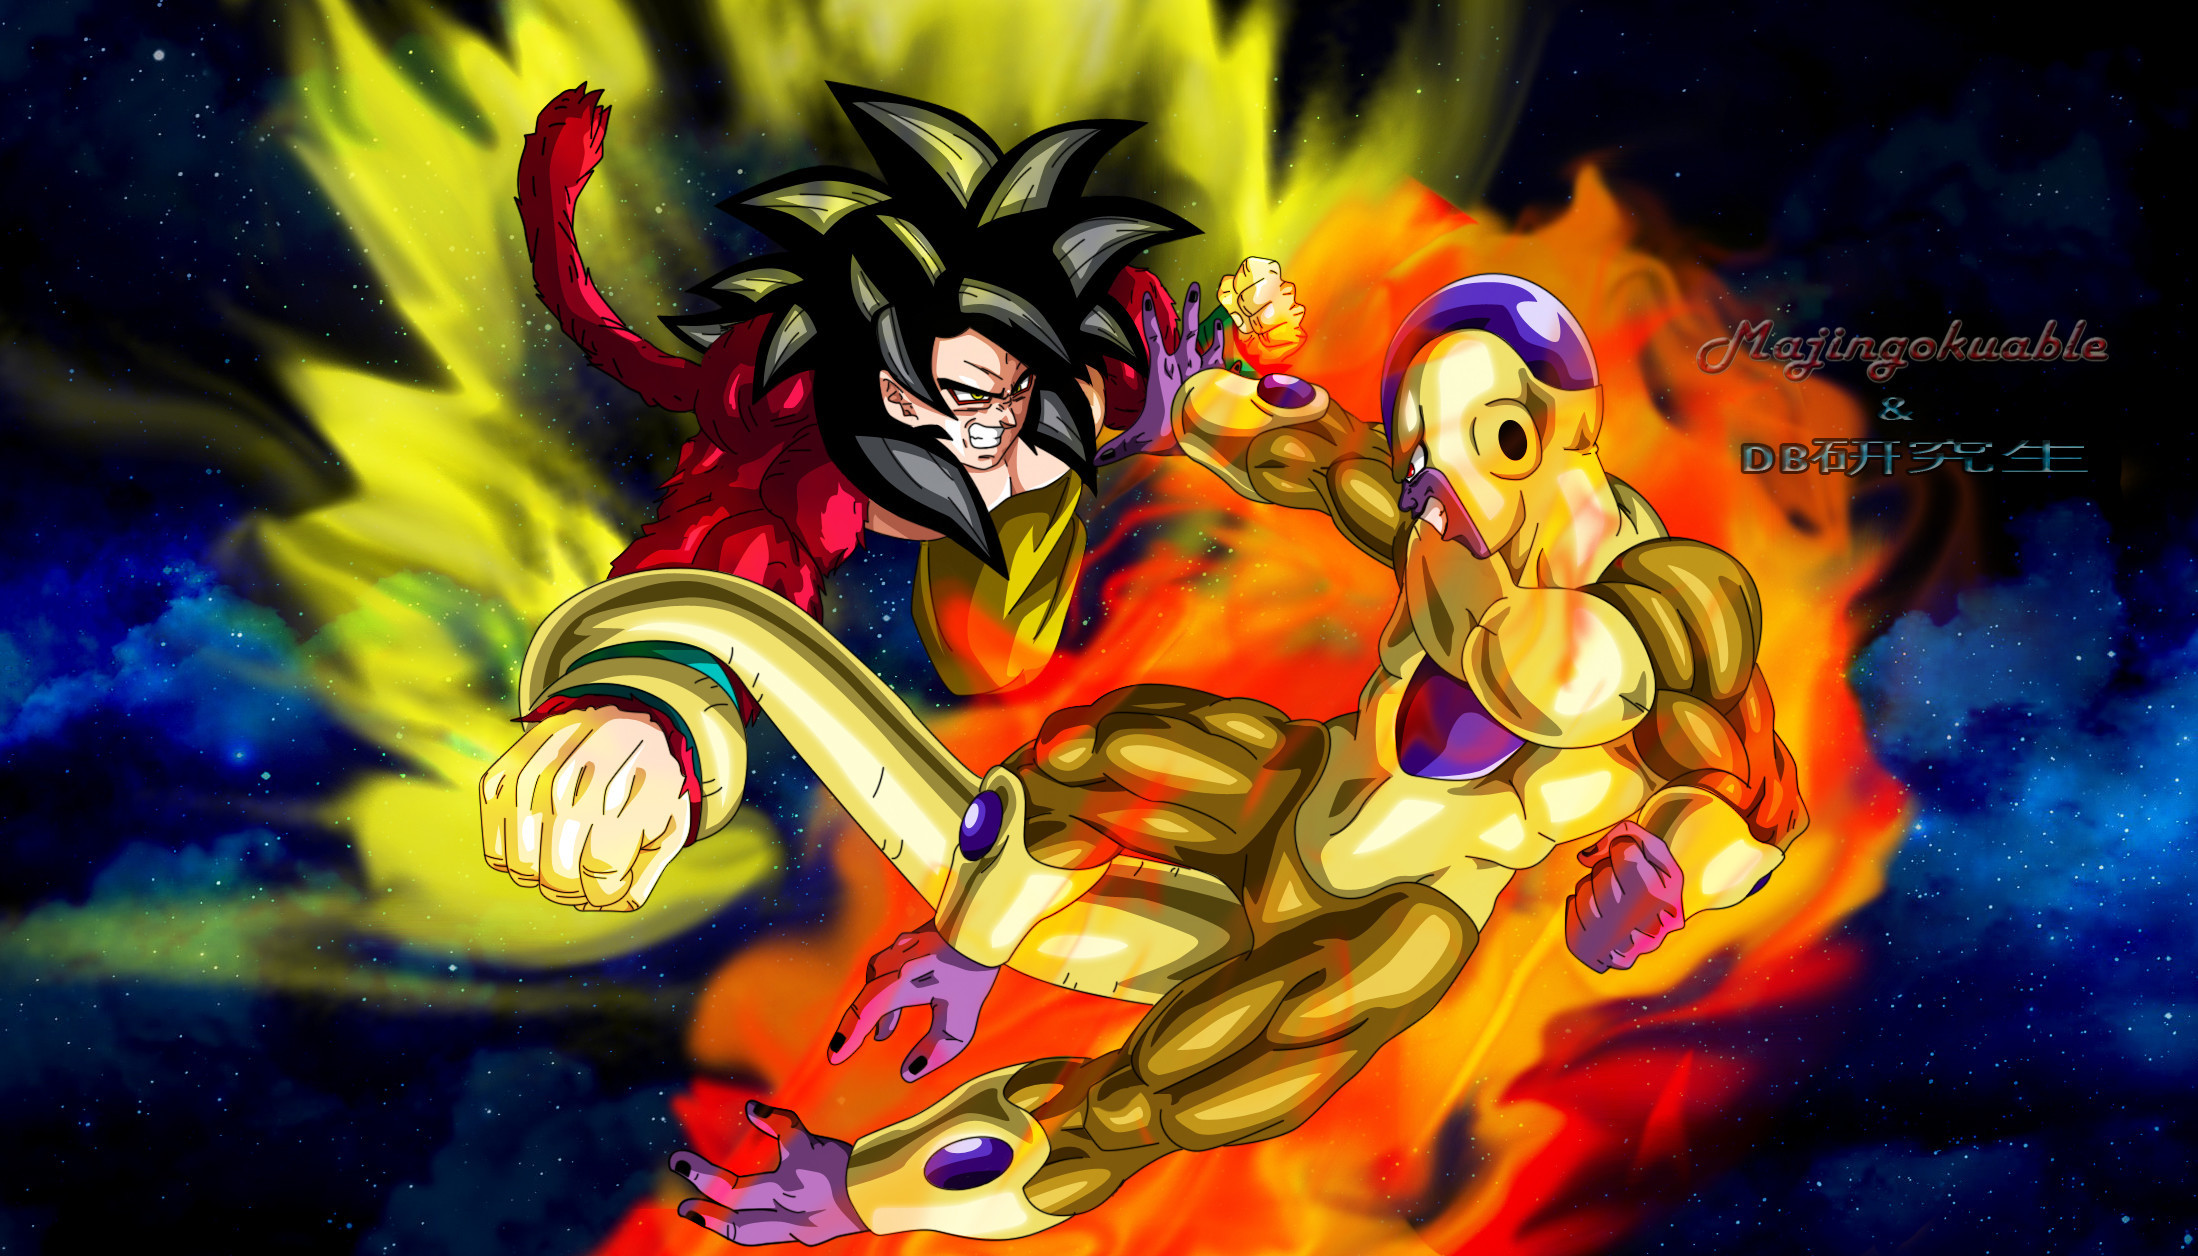 Res: 2198x1256, Golden Frieza by MolochTDL Source · Golden Frieza Wallpapers 65 Page 3 of 3  xshyfc com